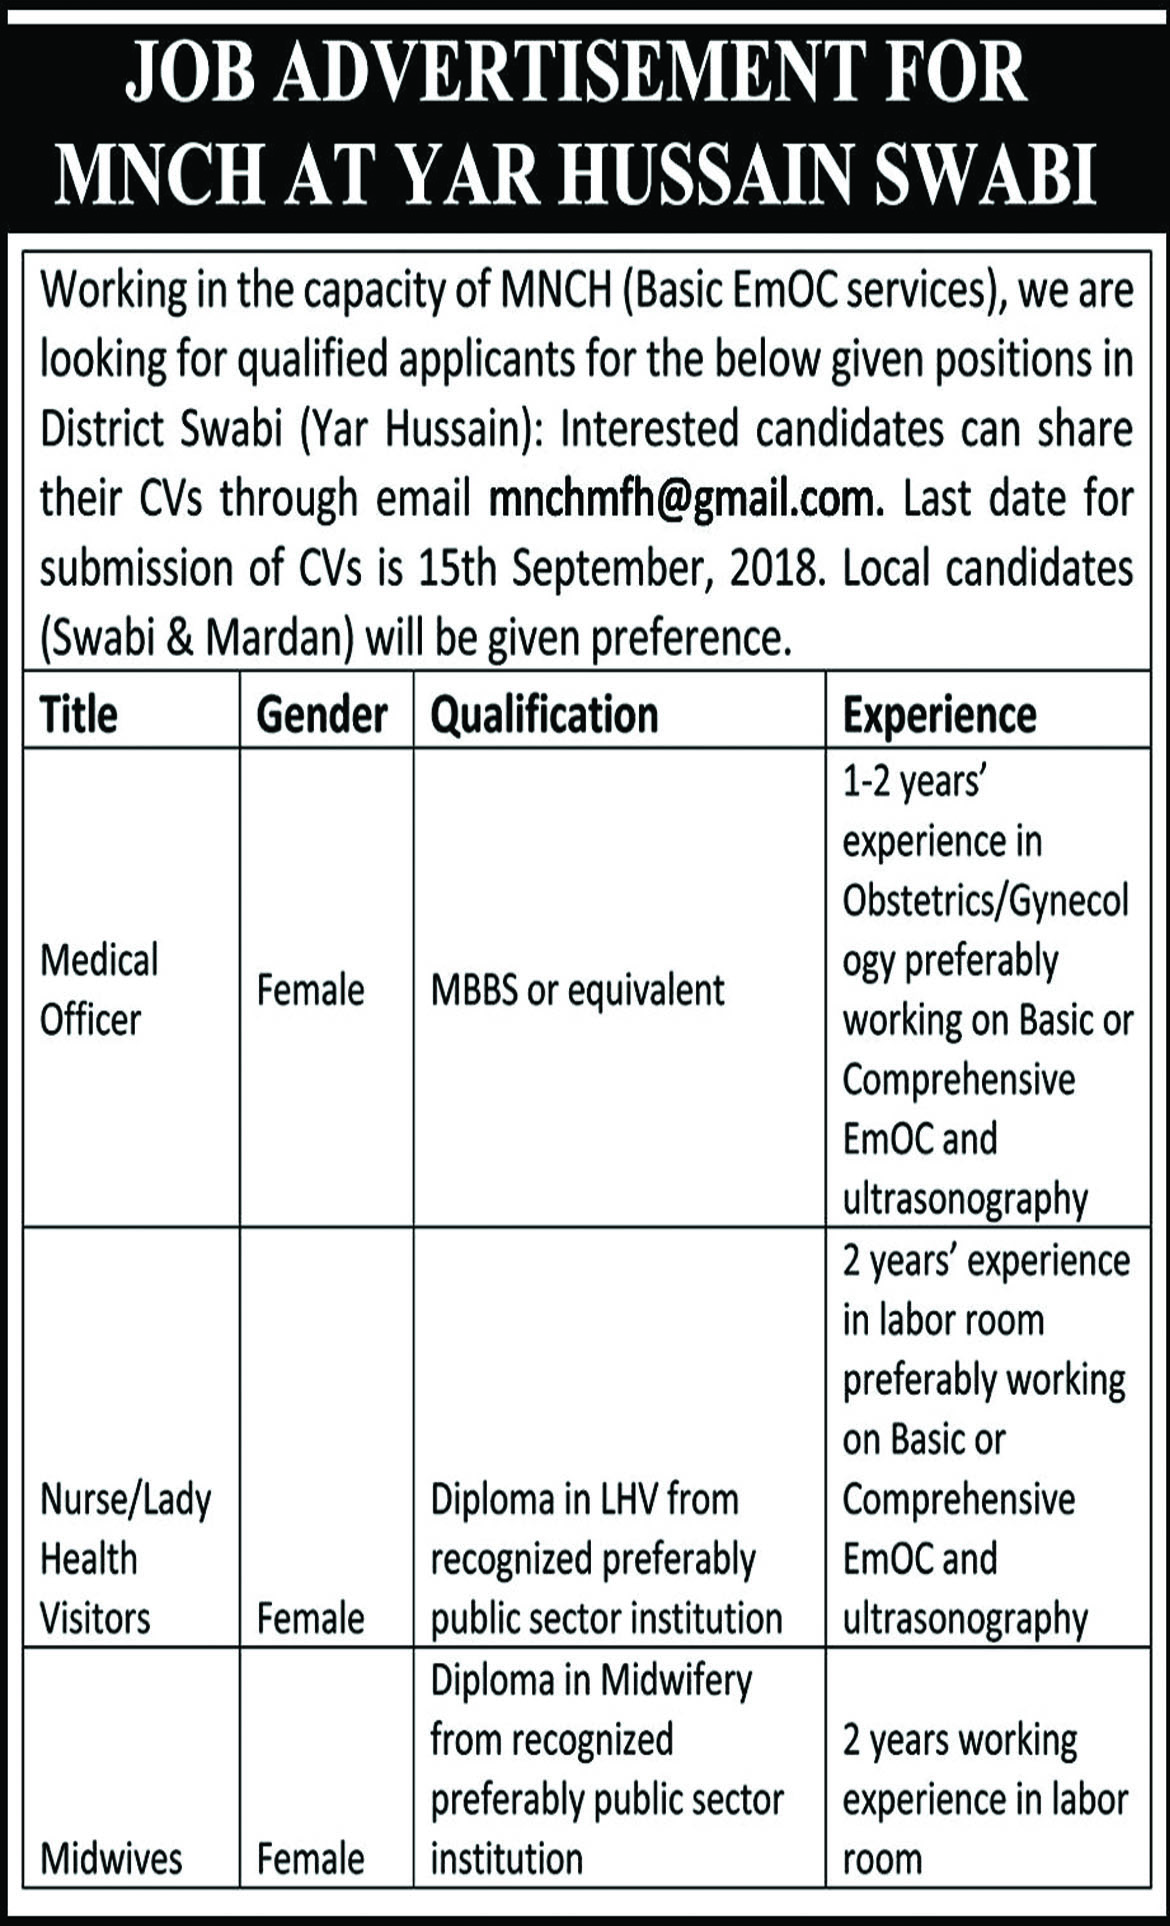 Jobs In Medical Officers, Nurse, Lady Health Visitor, Midwives  11 Sep 2018